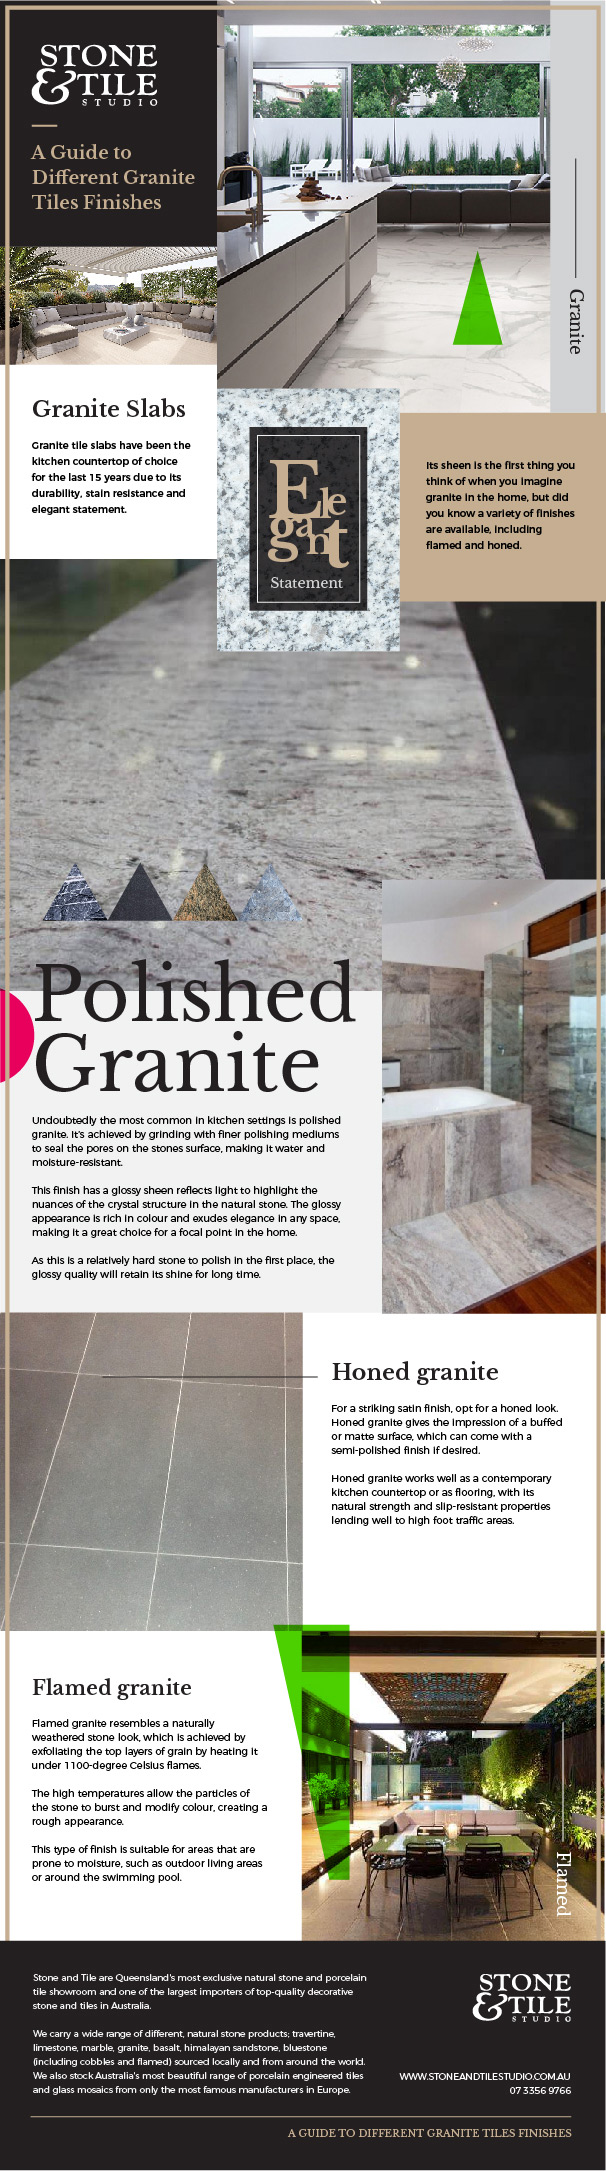 Granite tile finishes